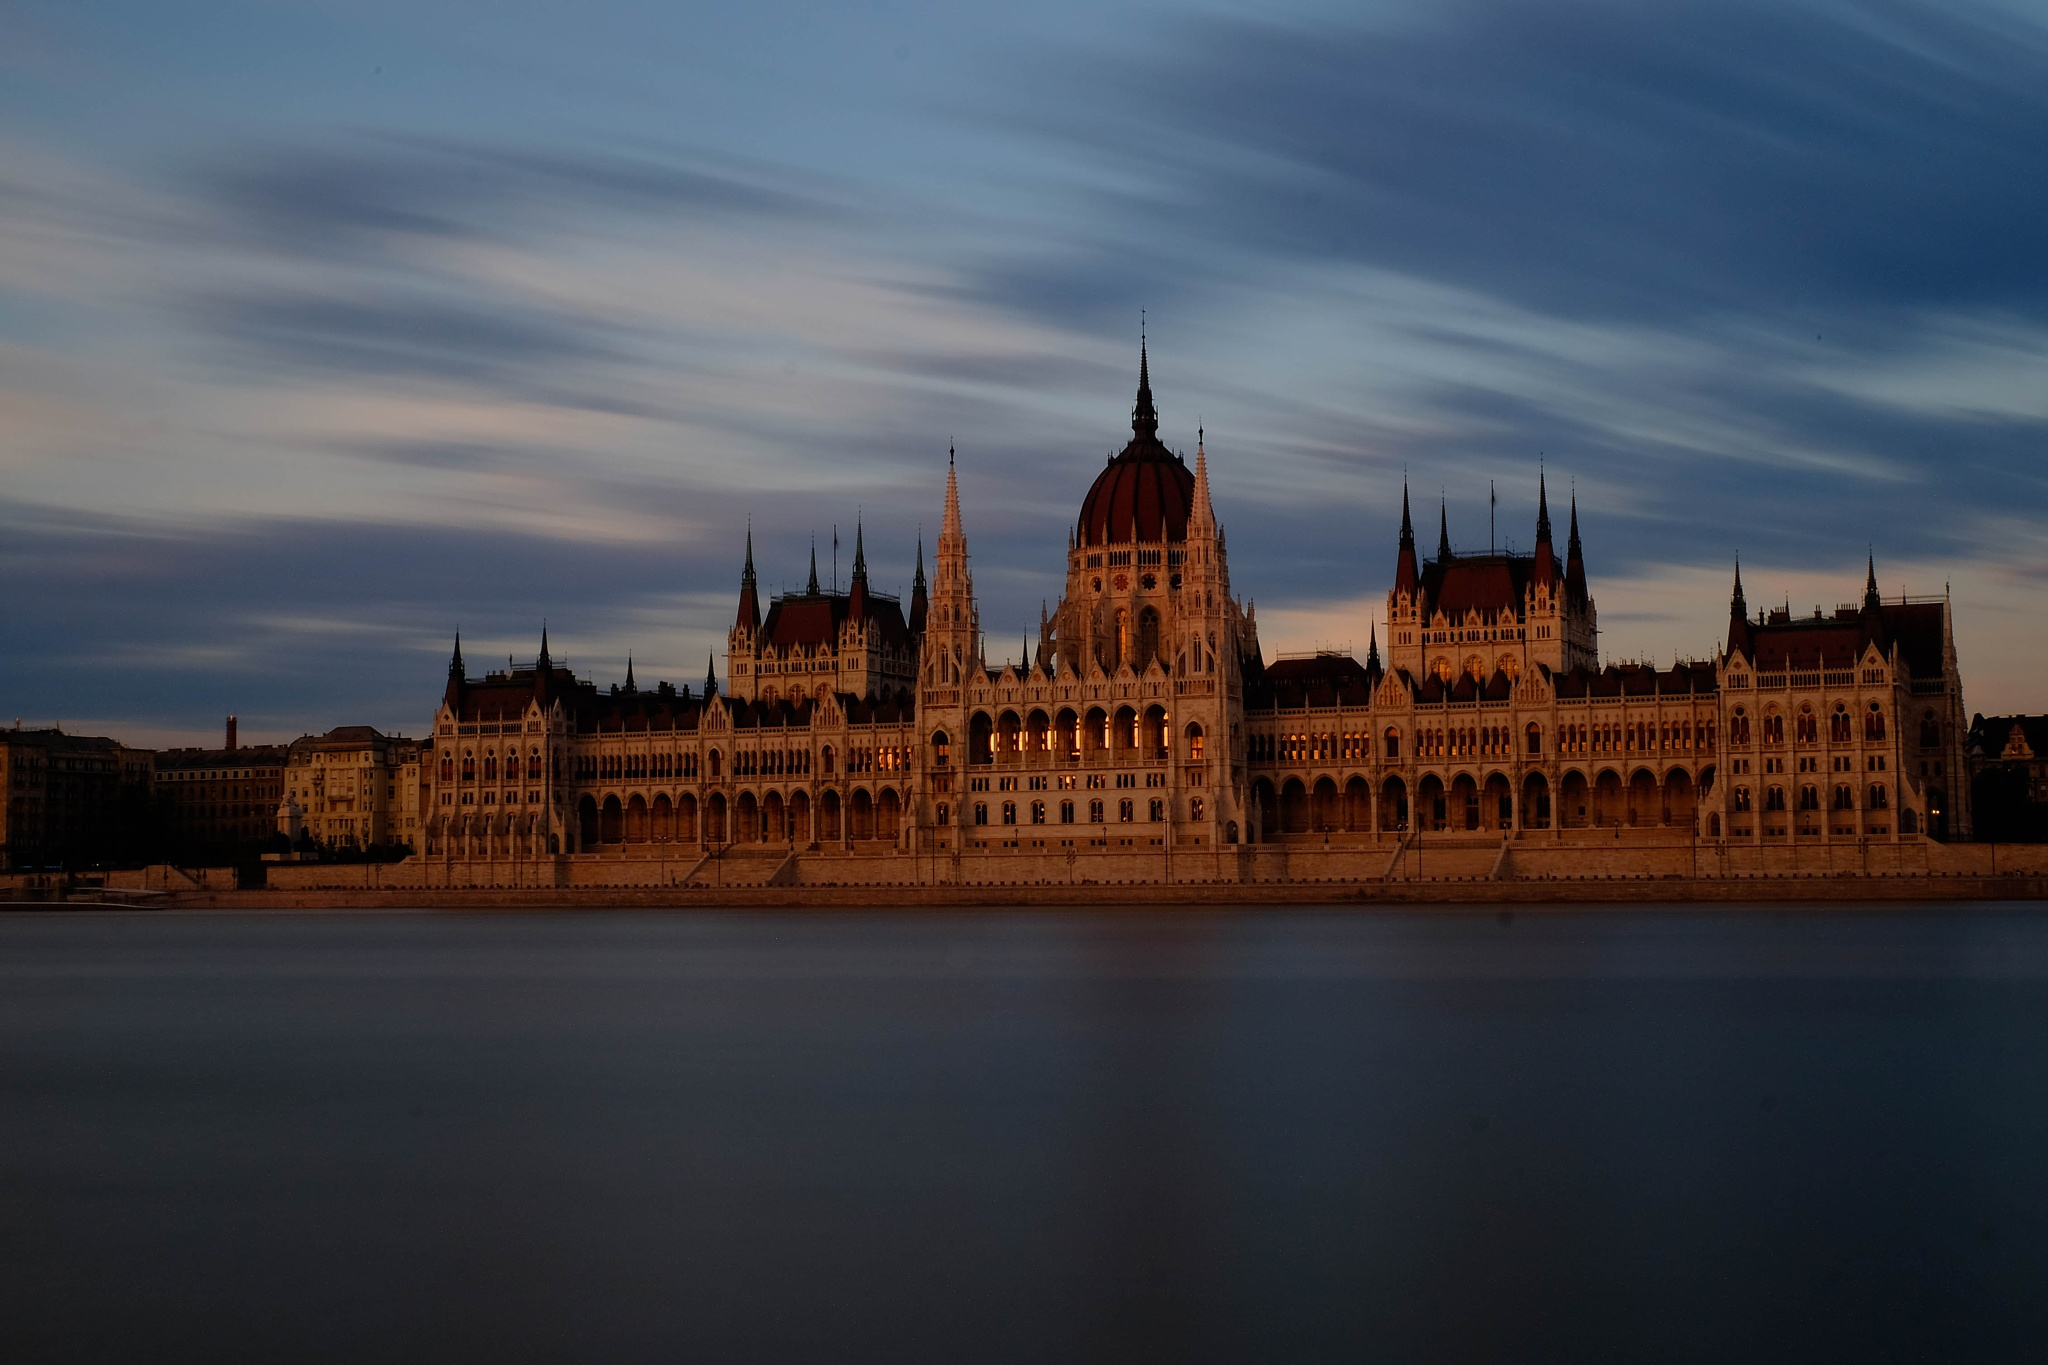 The Parliament by Michael Axt